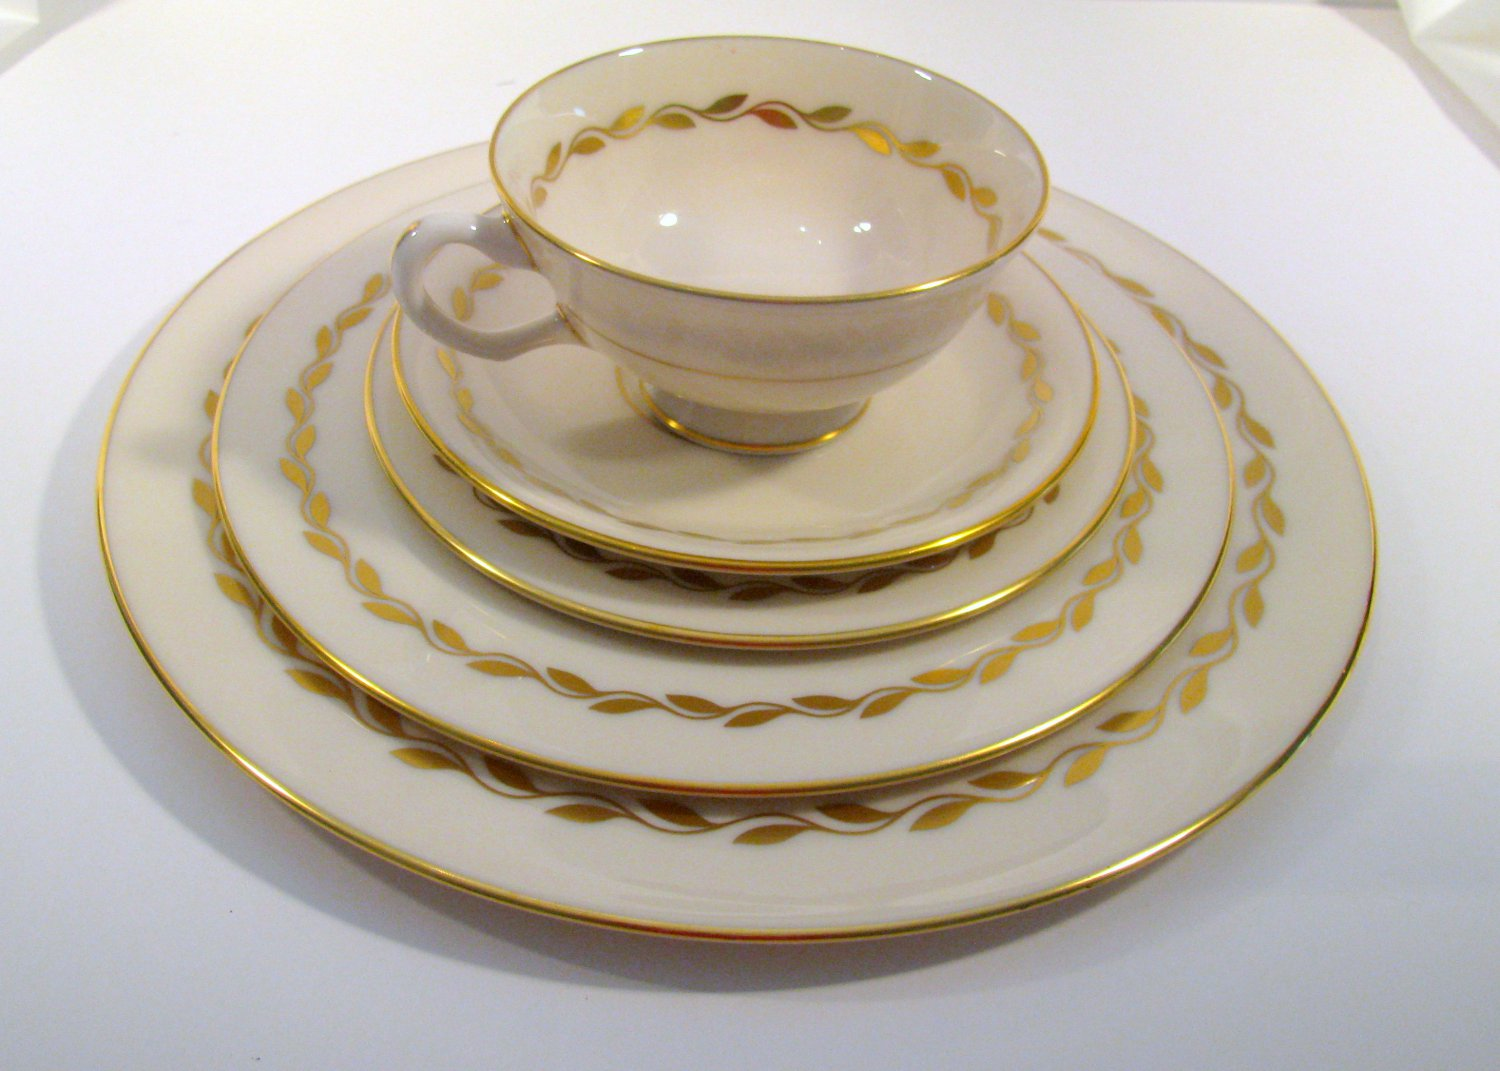 Lenox Golden Wreath 5 Piece Place Setting Mint Discontinued